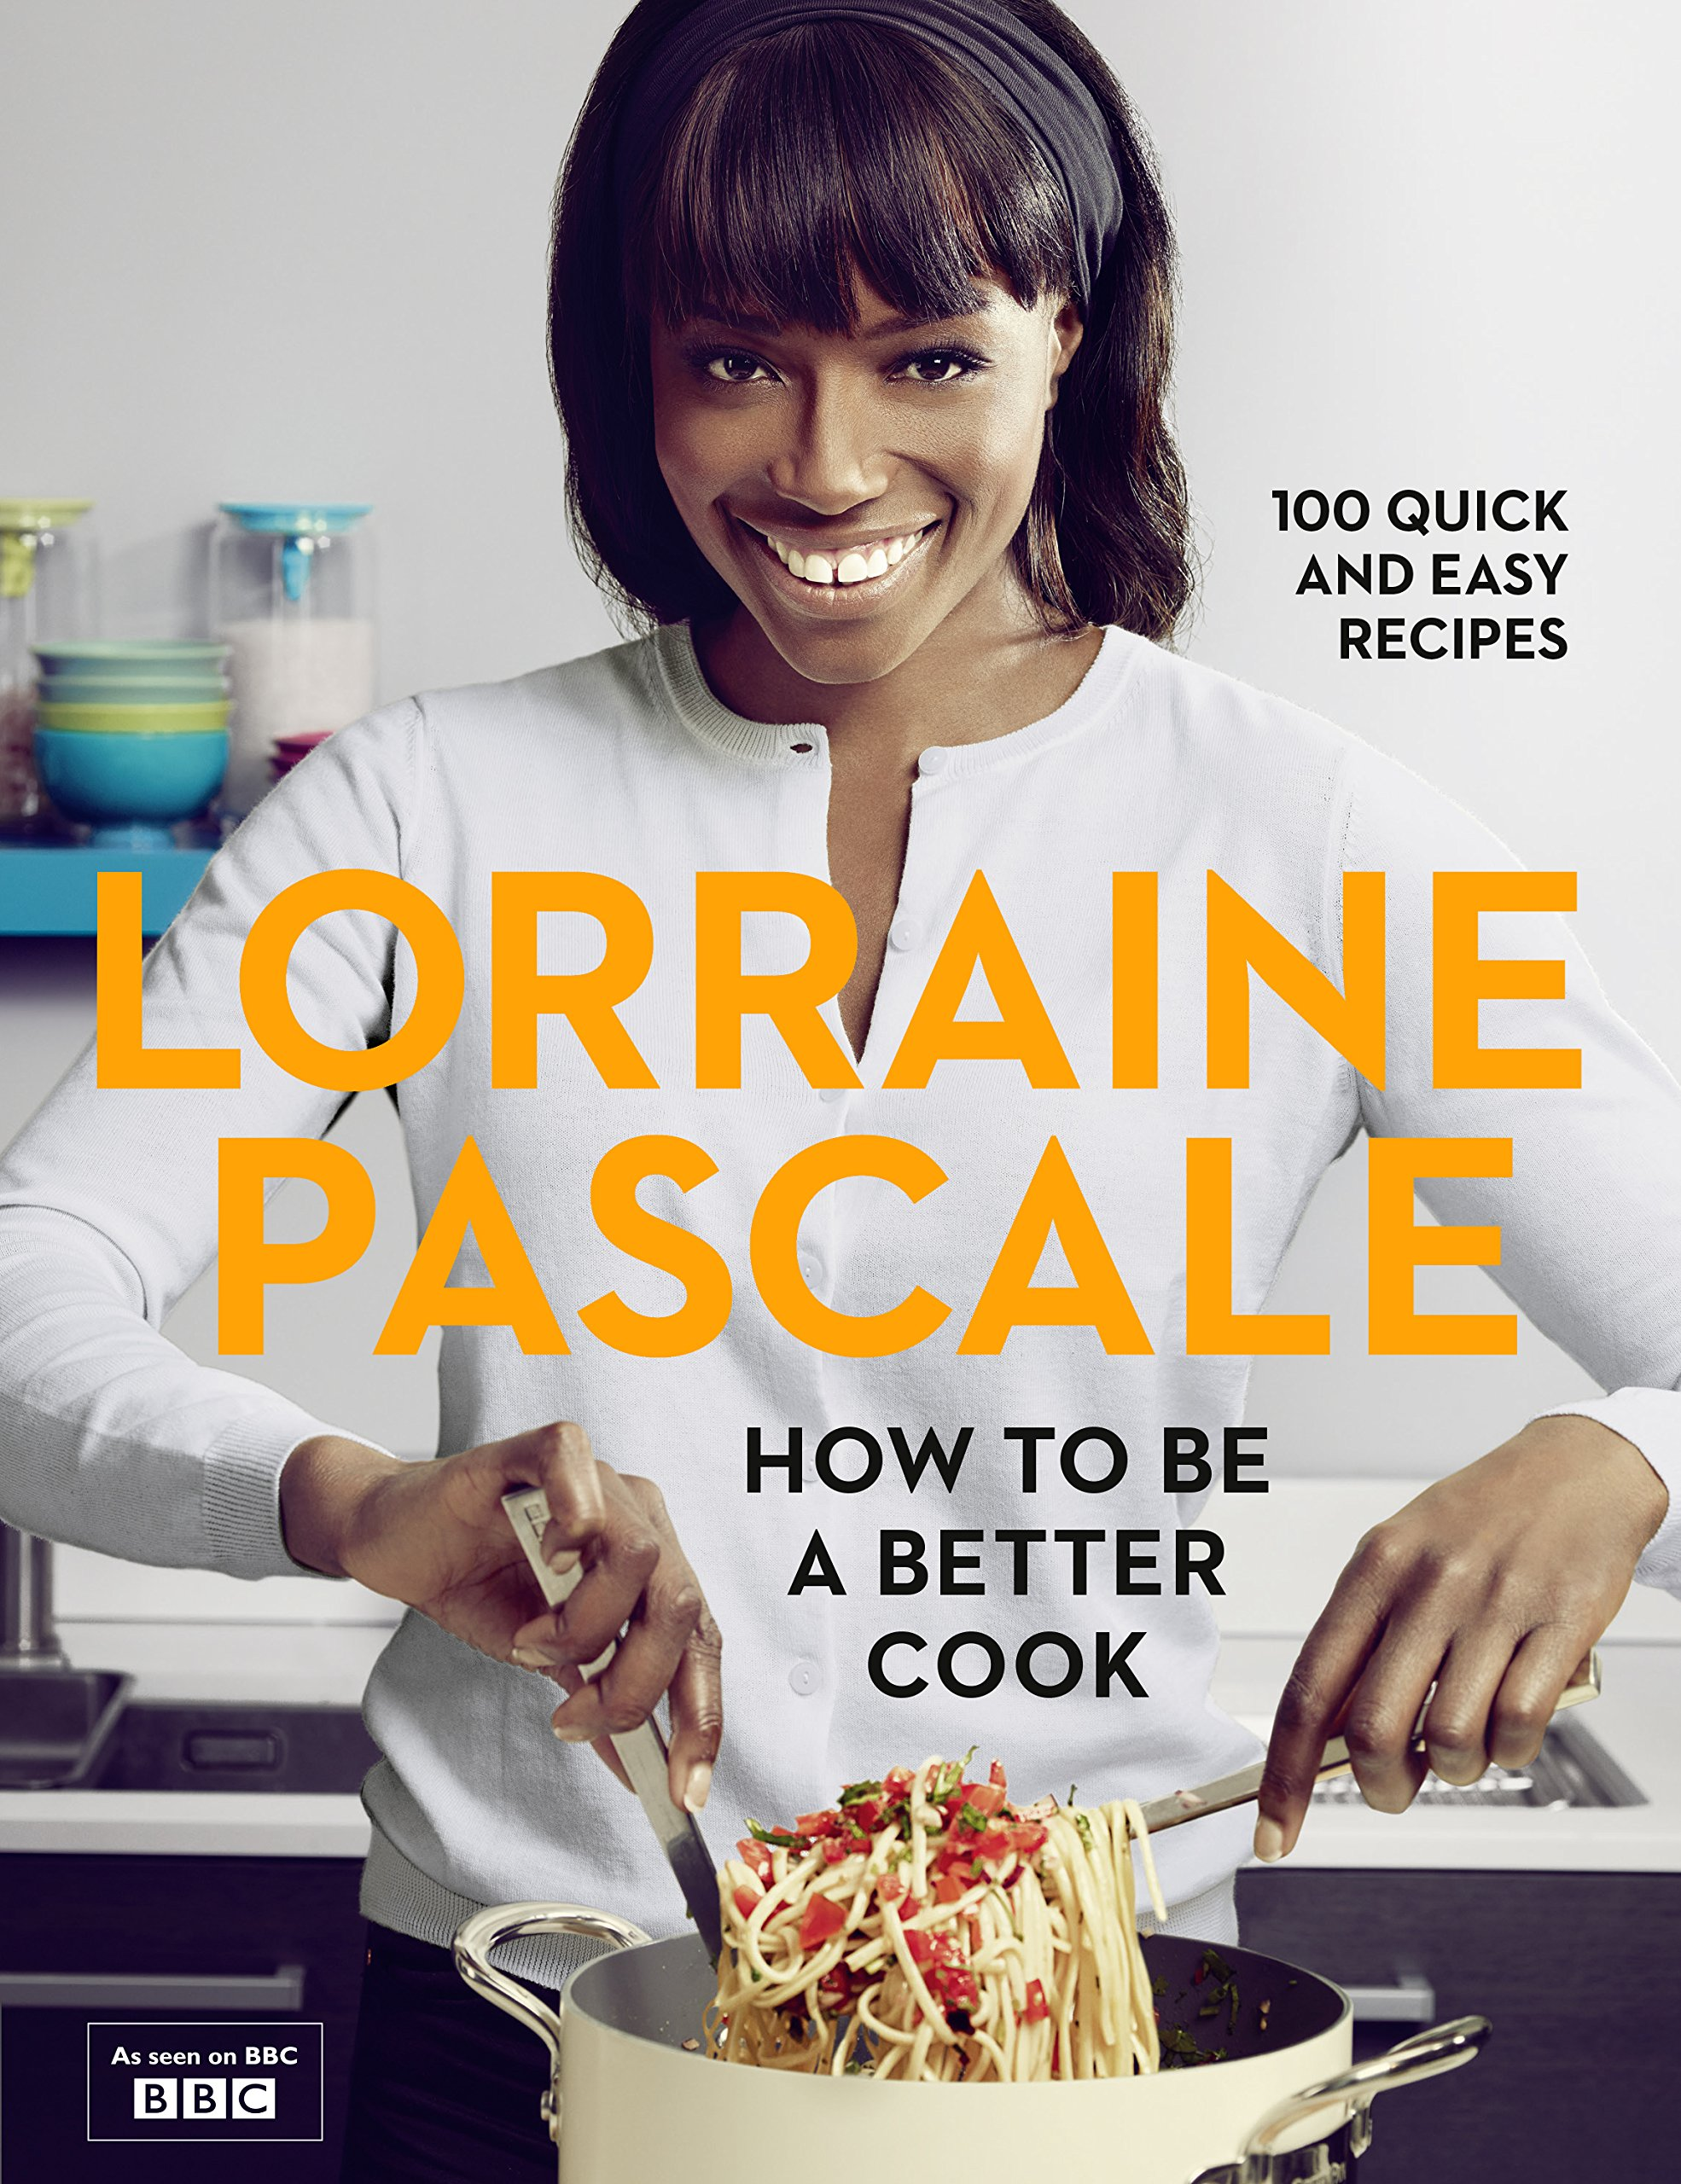 How to be a better cook amazon lorraine pascale how to be a better cook amazon lorraine pascale 9780007489688 books forumfinder Choice Image